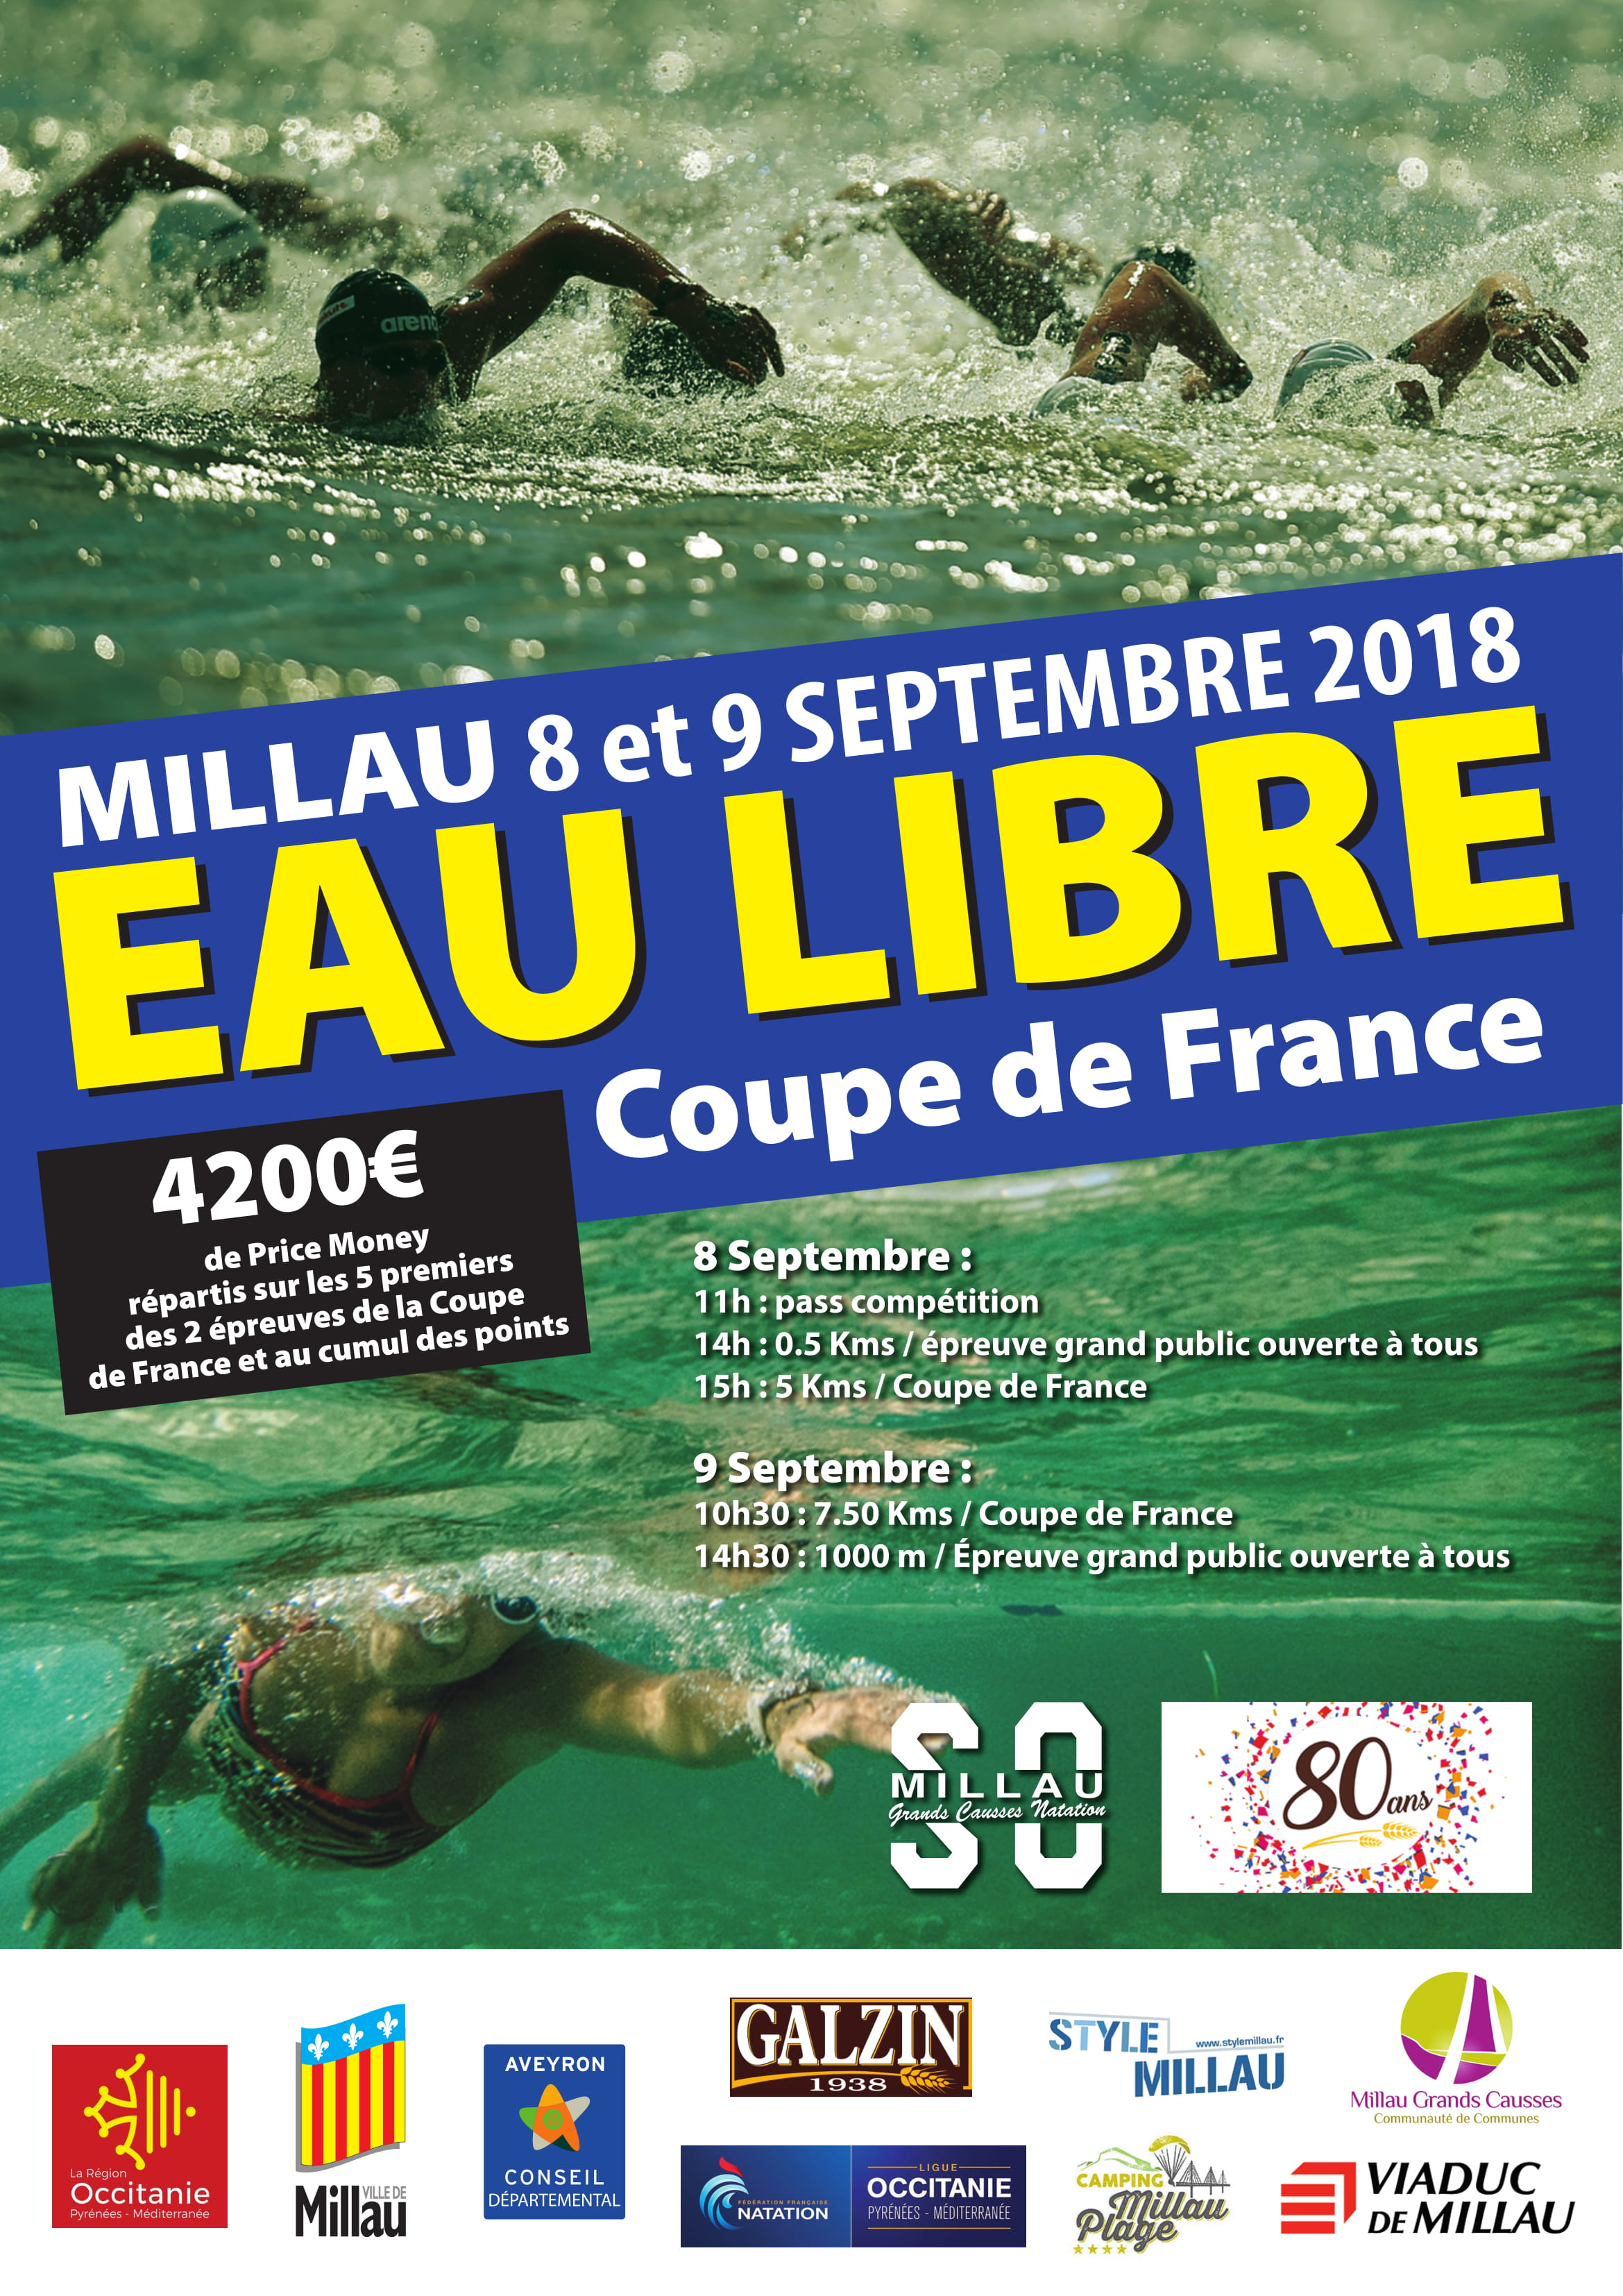 7.5km Coupe de France Millau